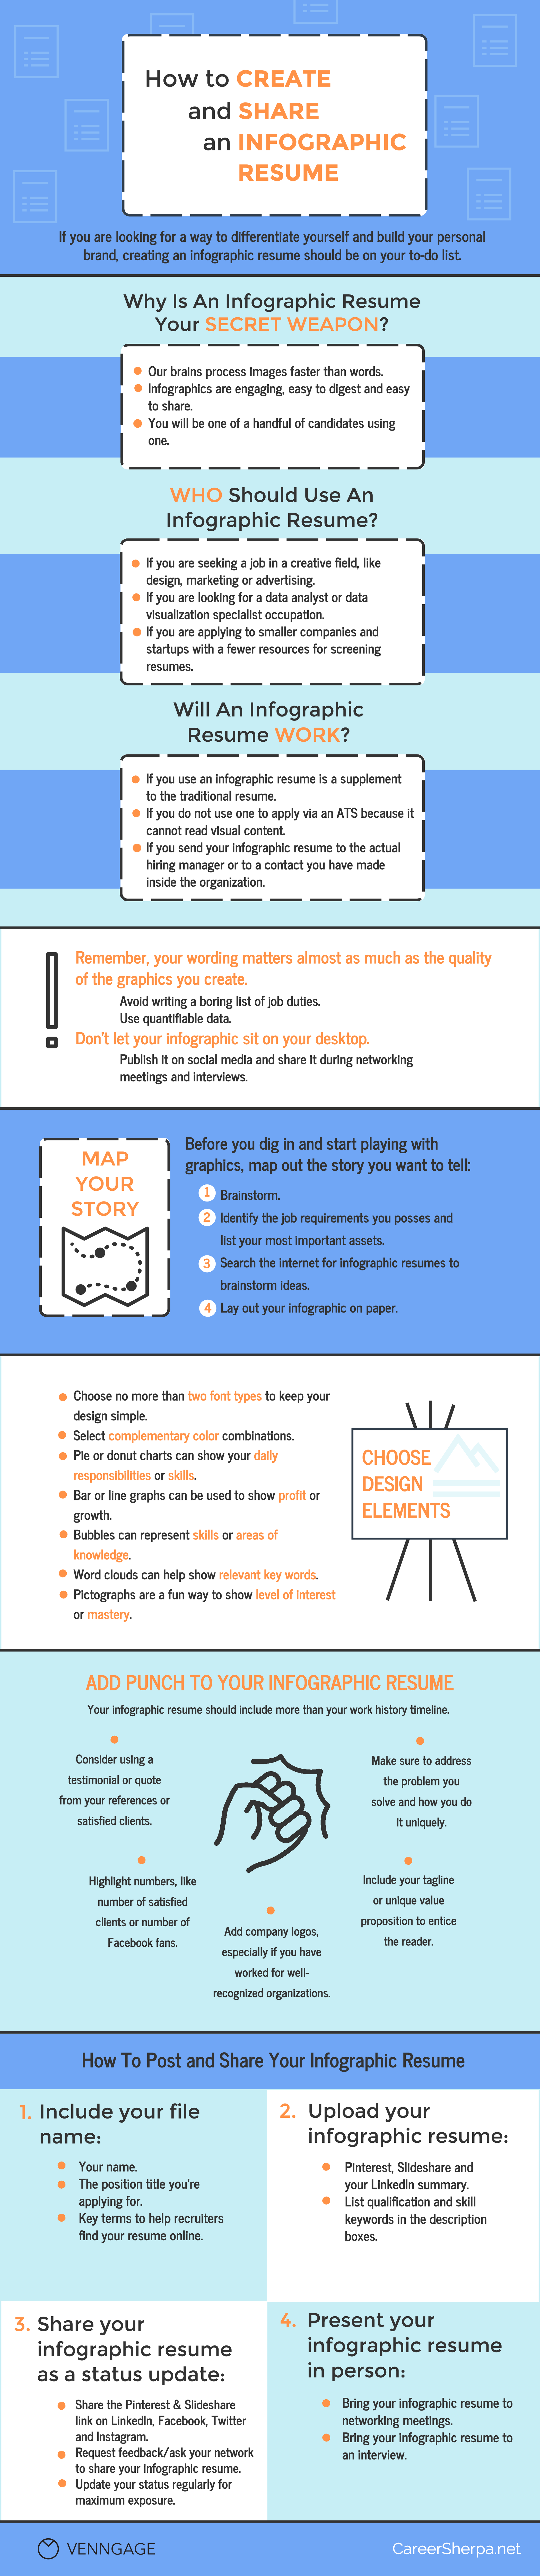 Infographic on how to brainstorm, create, format, share, and present an infographic resume when applying to a job